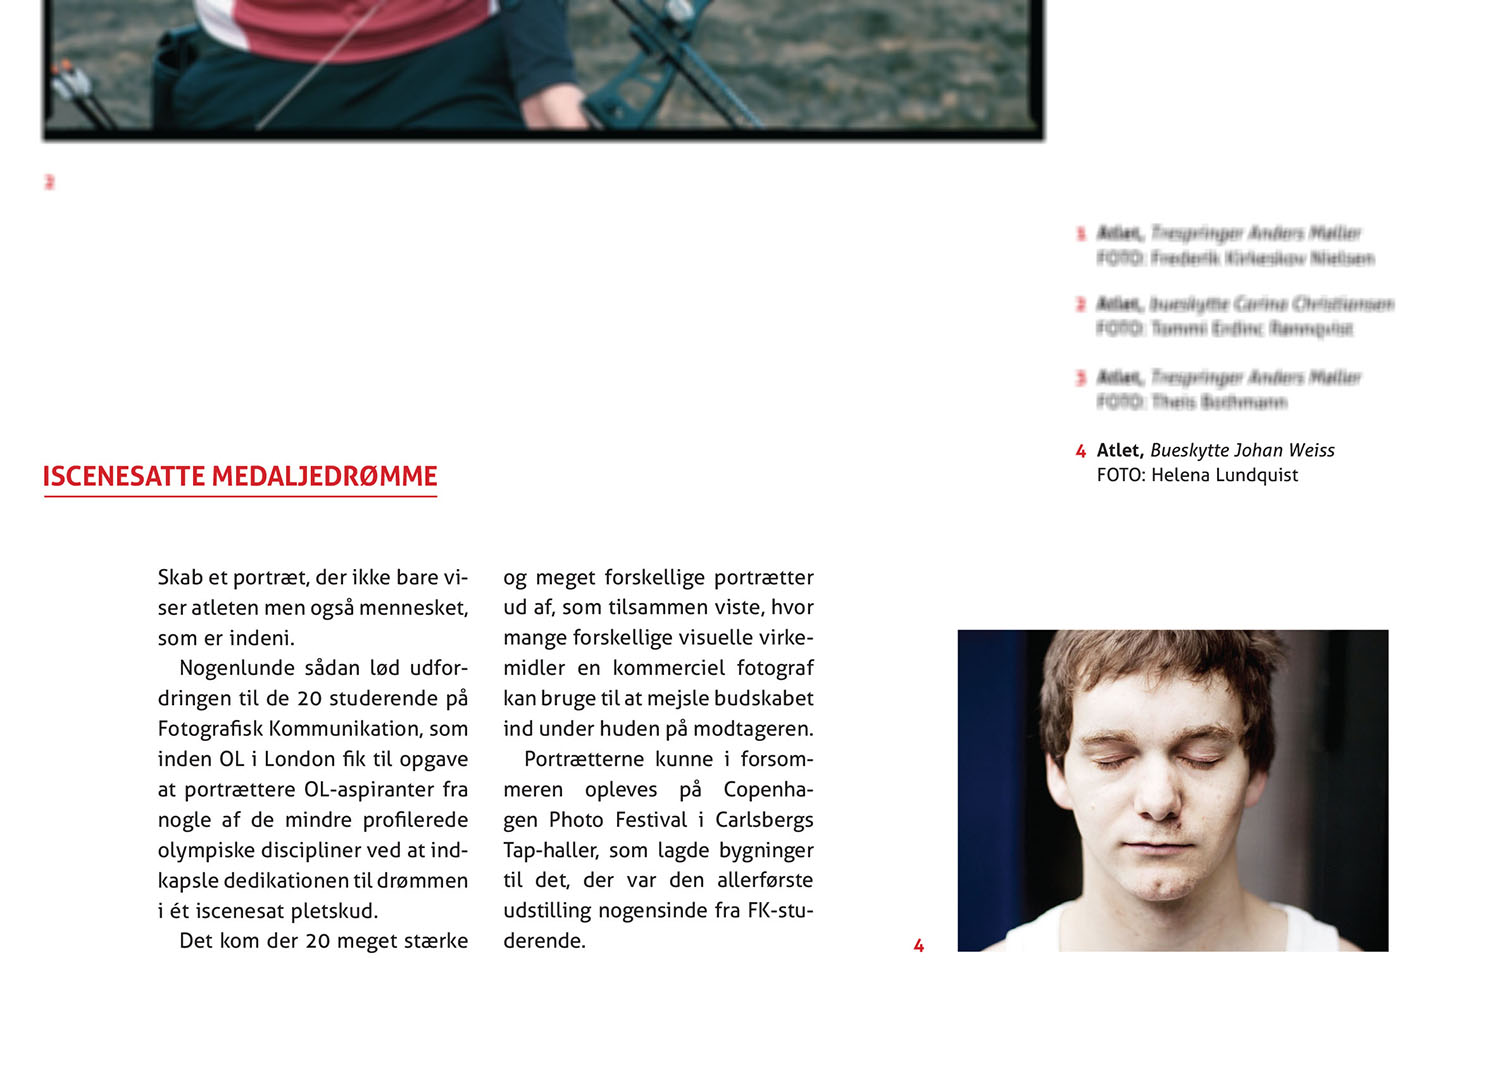 Annual Report, the danish School of Media and Journalism 2012